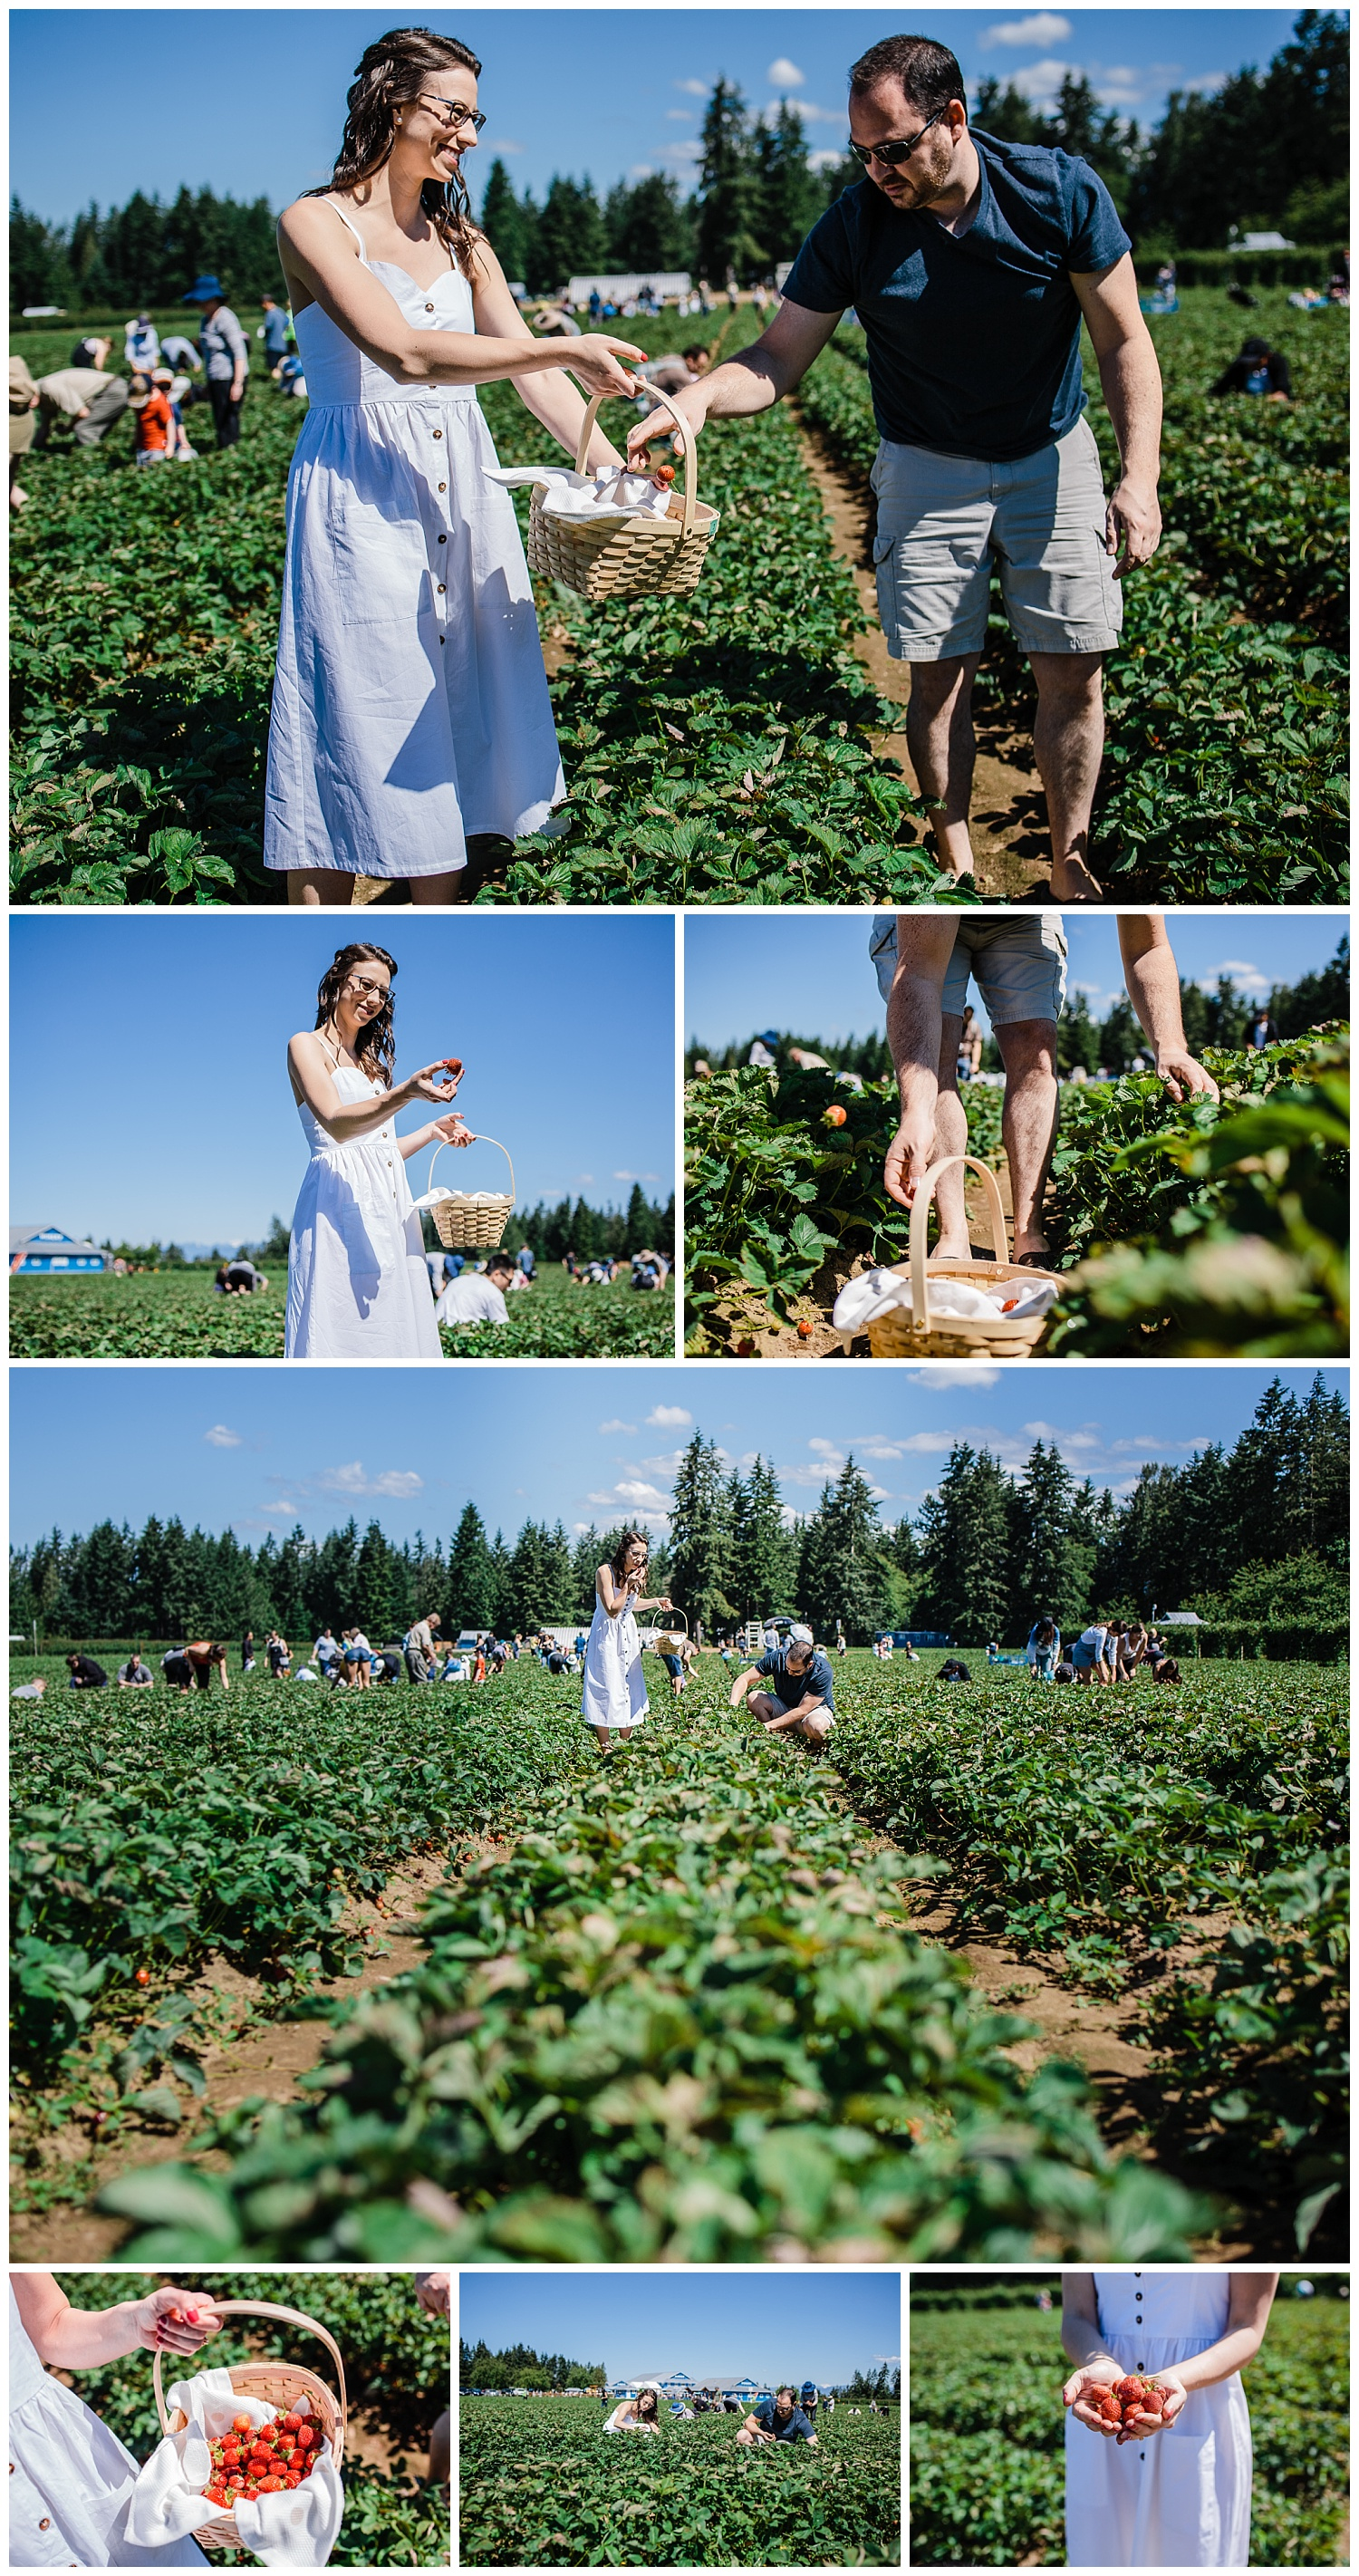 Krause Berry Farm Documentary Fun Engagement Photographer Fort Langley  Mustard Yellow City -035_collage.jpg